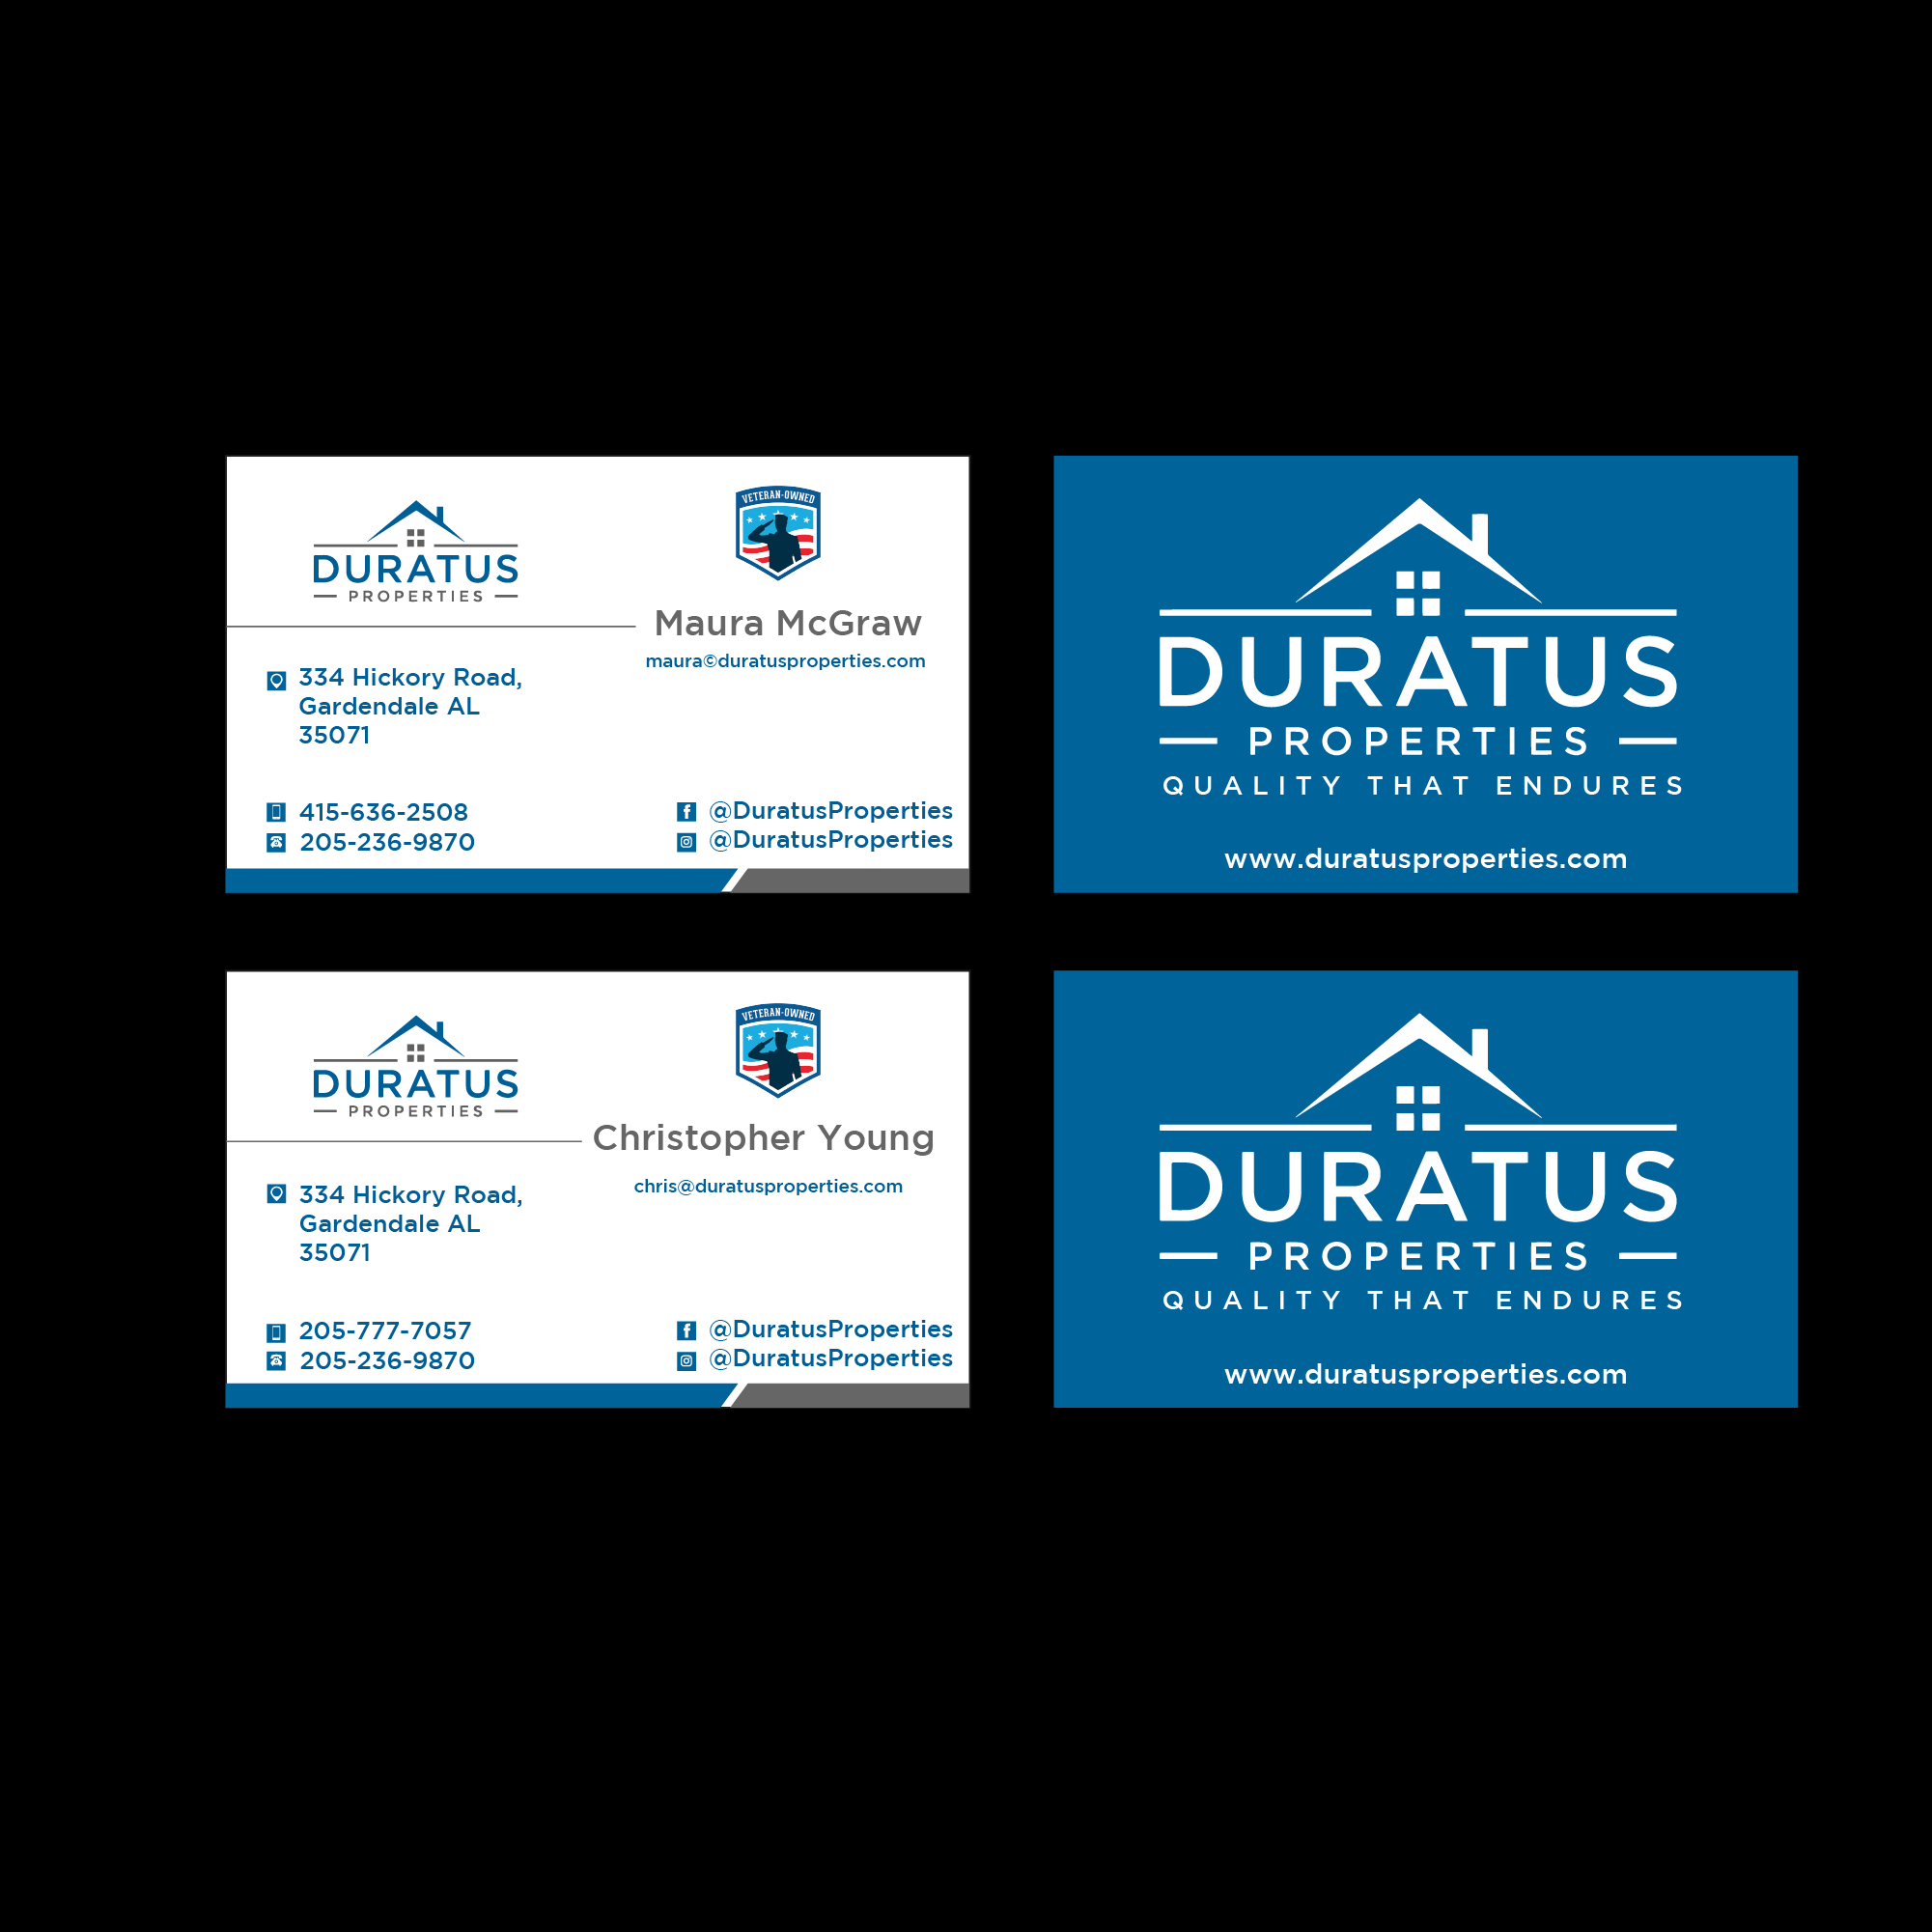 Duratus Properties Business Products